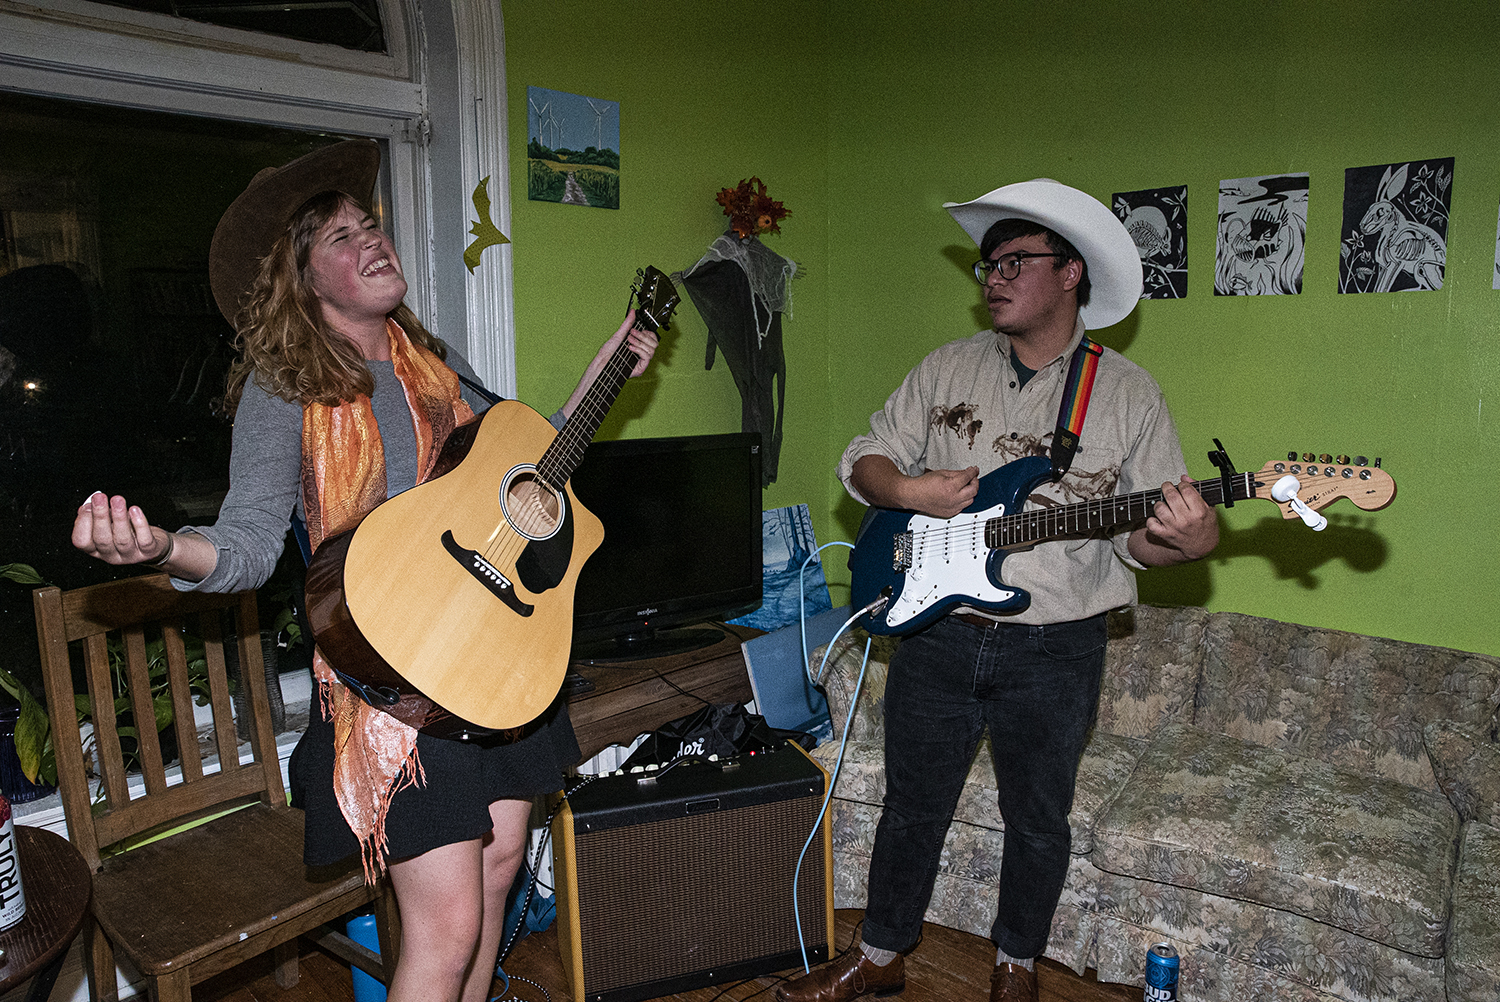 Cowpoke performs at River City Housing Collective on Saturday, October 27th, 2019.   As part of a Halloween celebration, River City Collective Housing hosted various local bands along with a costume contest.